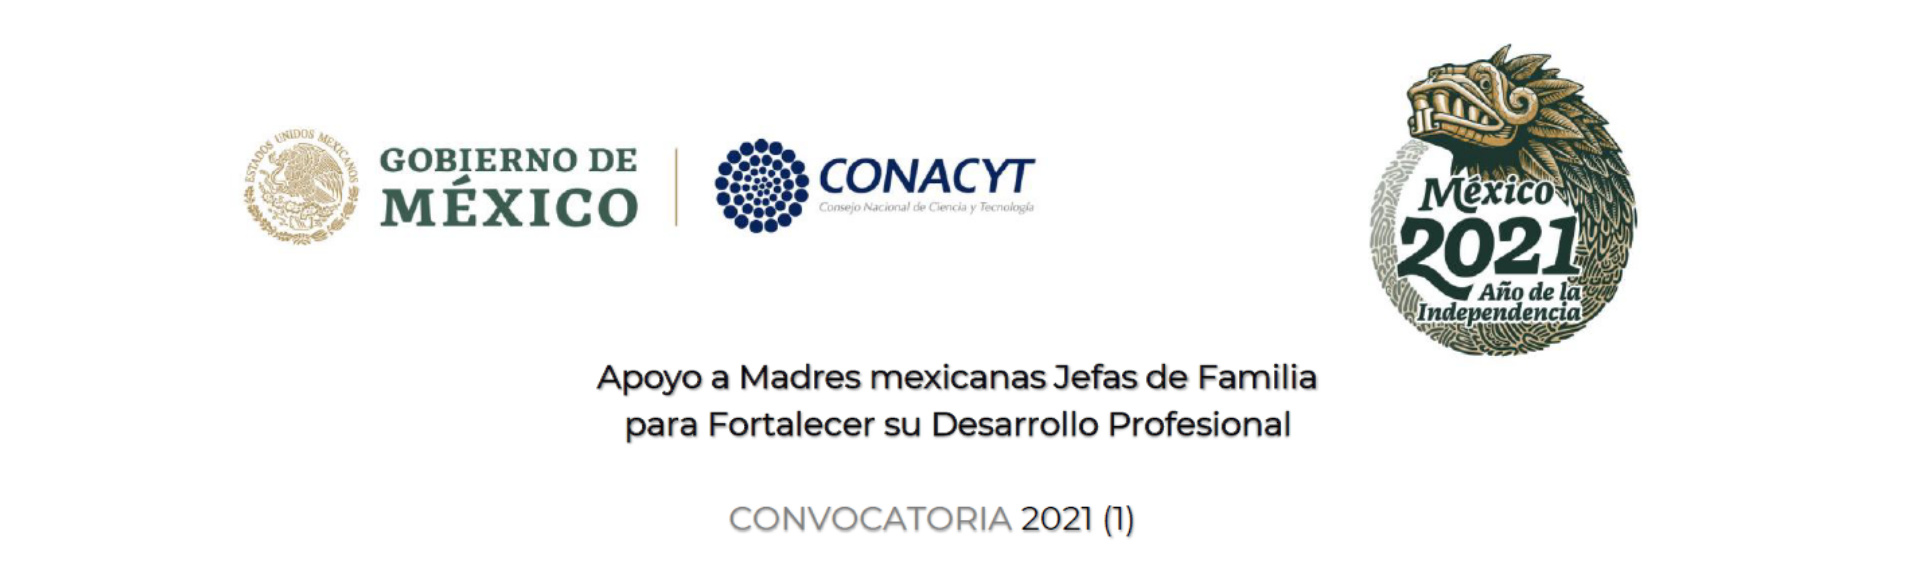 BANNER BECAS MADRES CONACYT